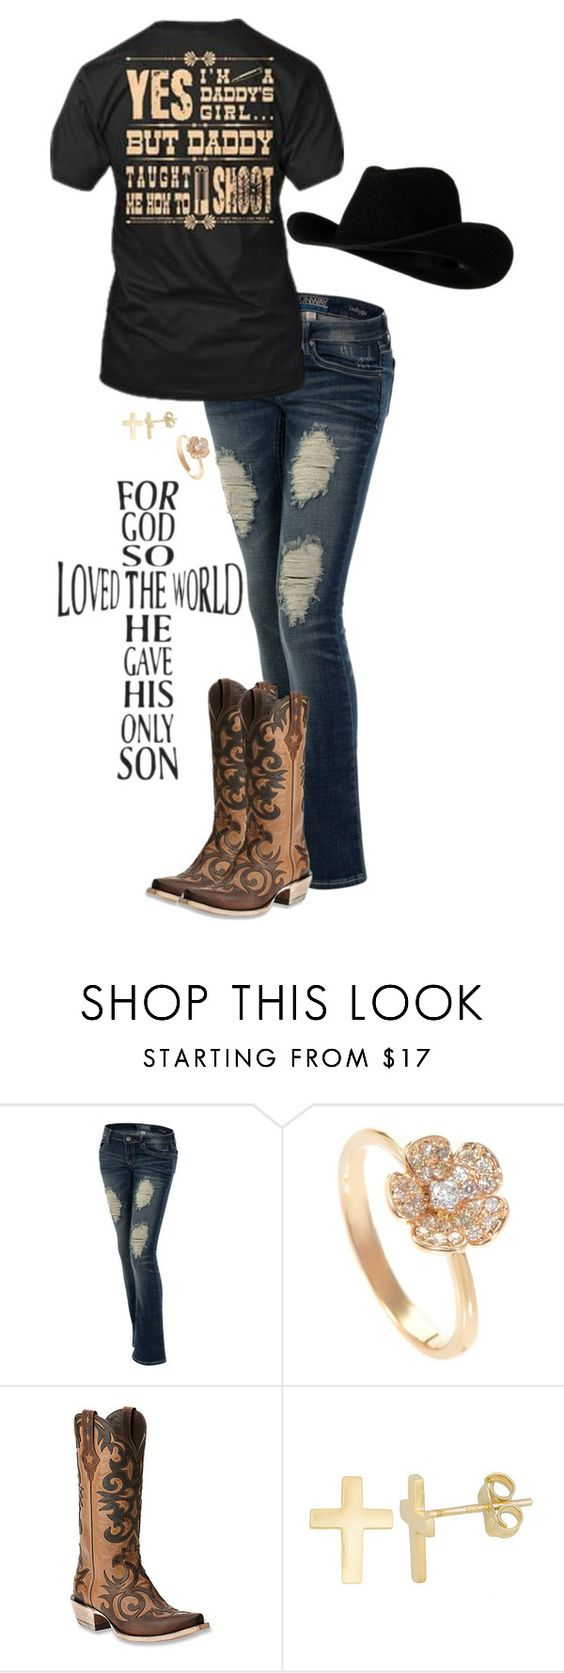 """July In Cheyenne"" by christina-marie-miller ❤ liked on Polyvore featuring Ariat and Fremada"